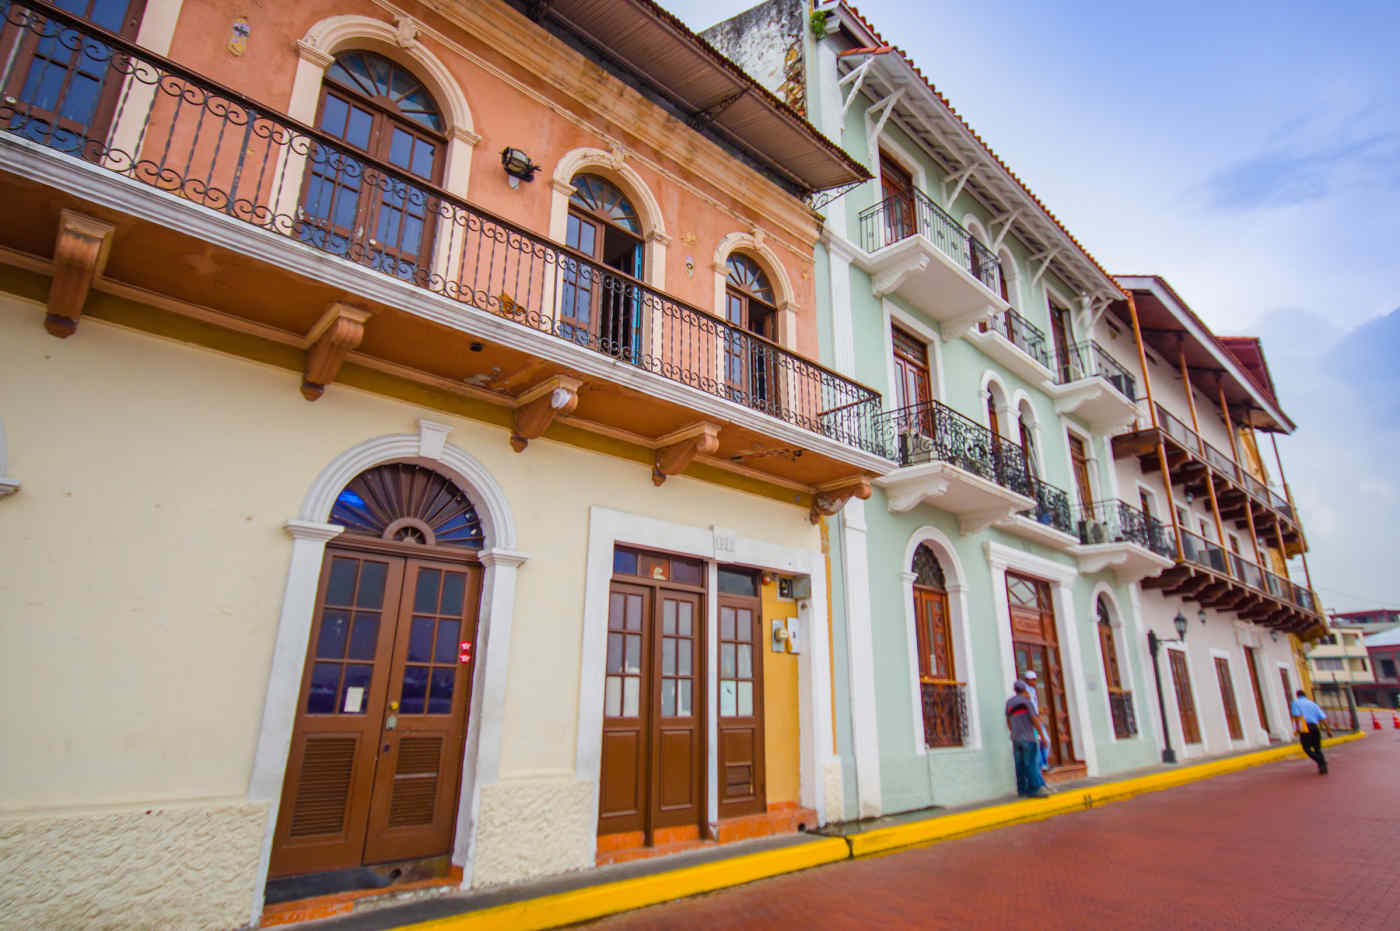 Casco Viejo, the Old Town in Panama City, Panama